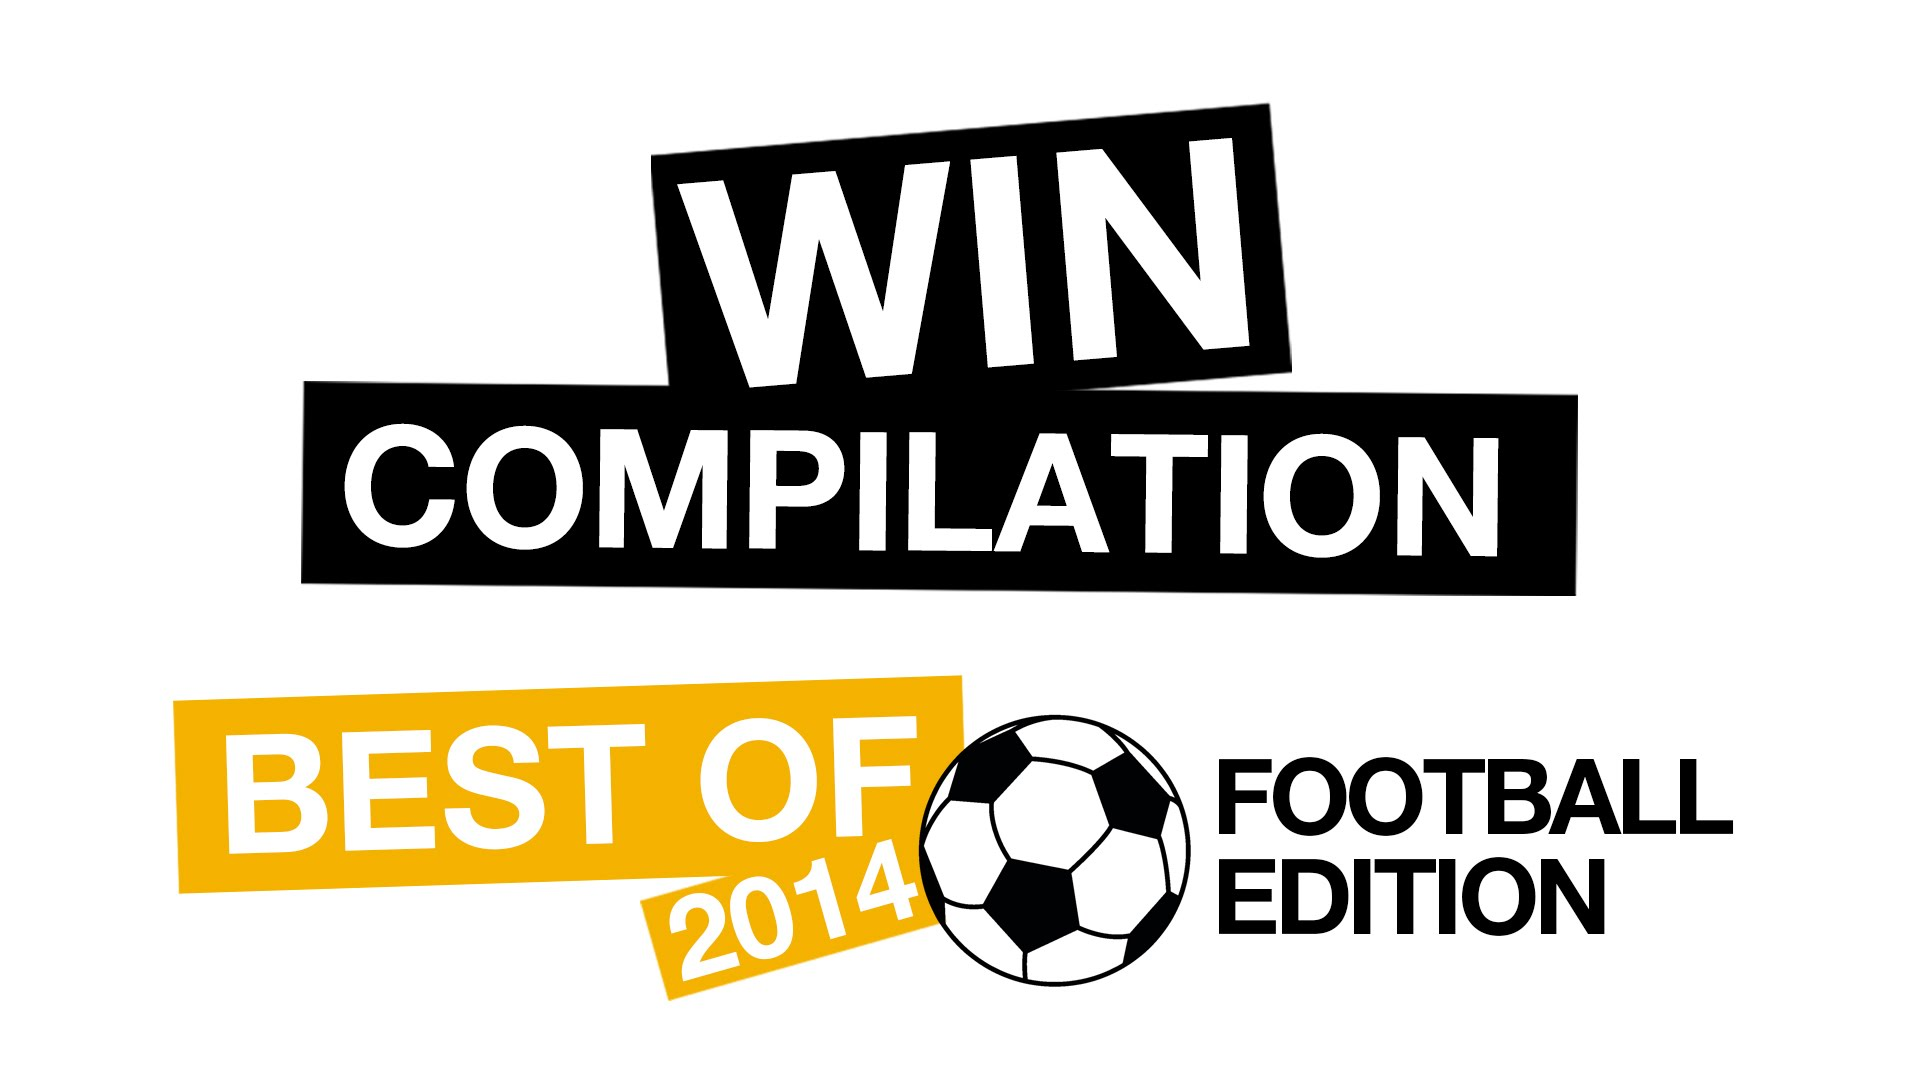 WIN Compilation Best of 2014 - Football Edition